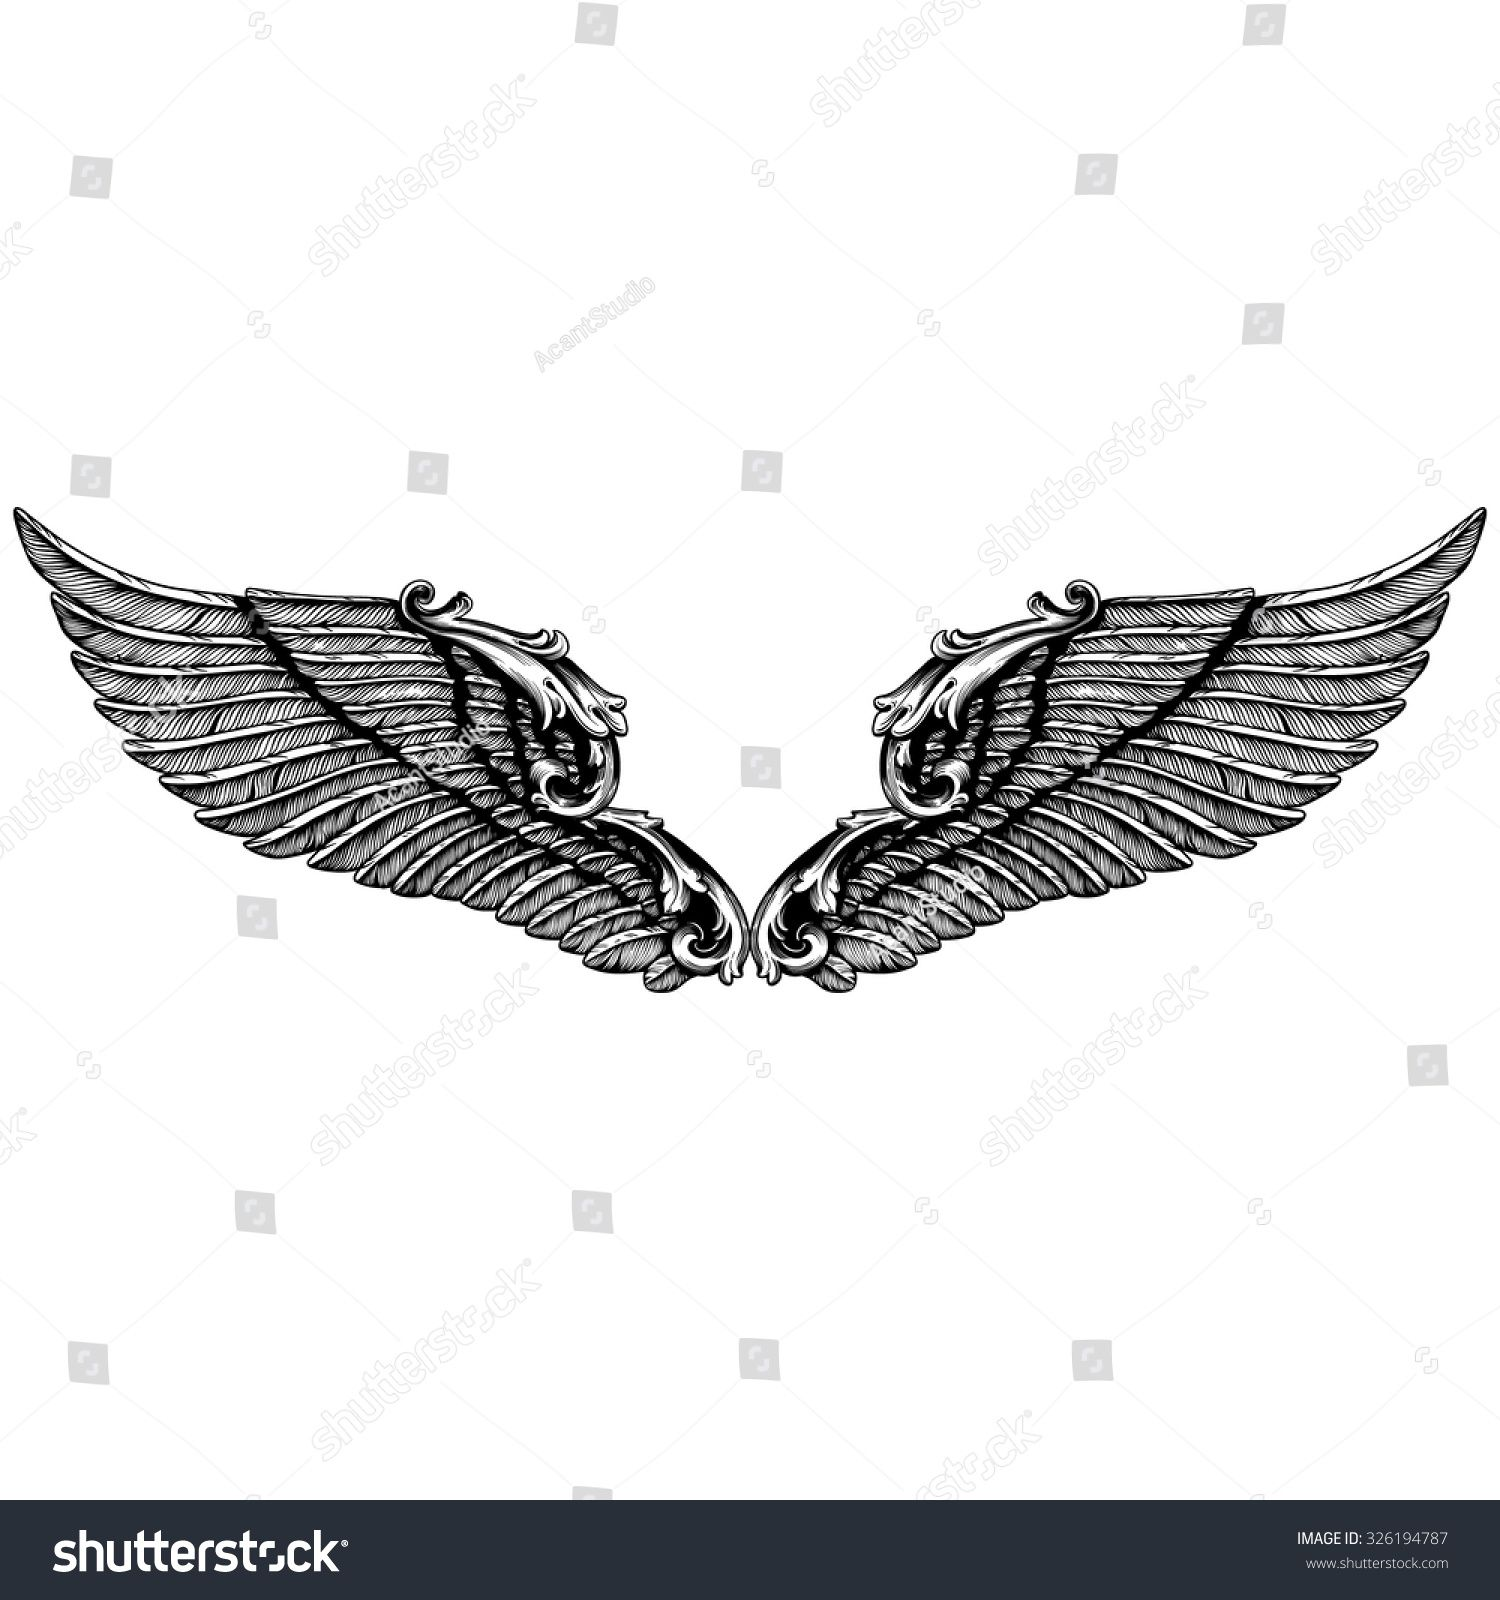 5a4051695 Hand drawn angel wings   illustration of a pair of angel or eagle wings  spread. Angel or bird wings abstract sketch set isolated vector illustration